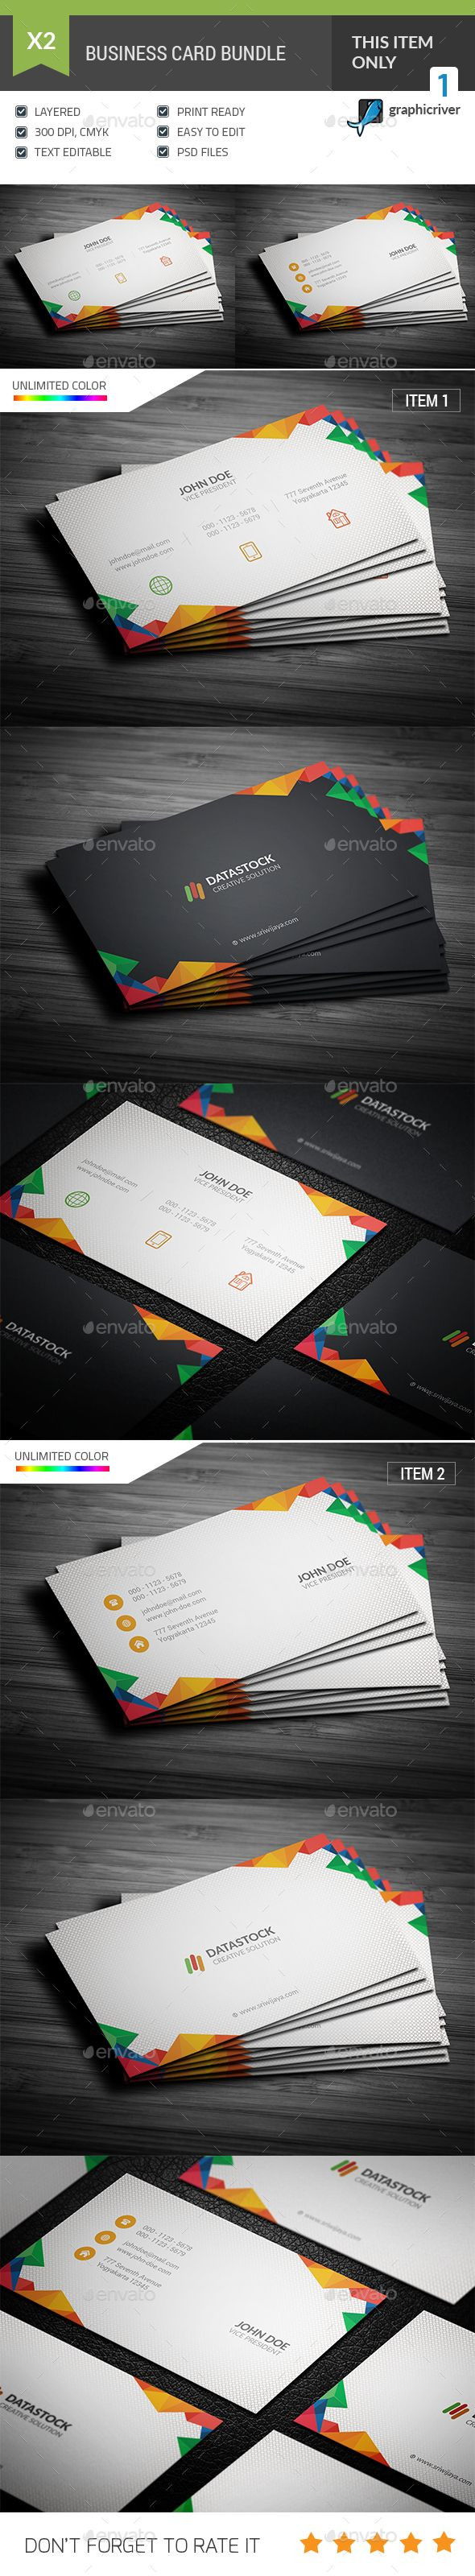 Multicolor Business Card Bundle - Corporate Business Cards Download here : https://graphicriver.net/item/multicolor-business-card-bundle/18944605?s_rank=101&ref=Al-fatih